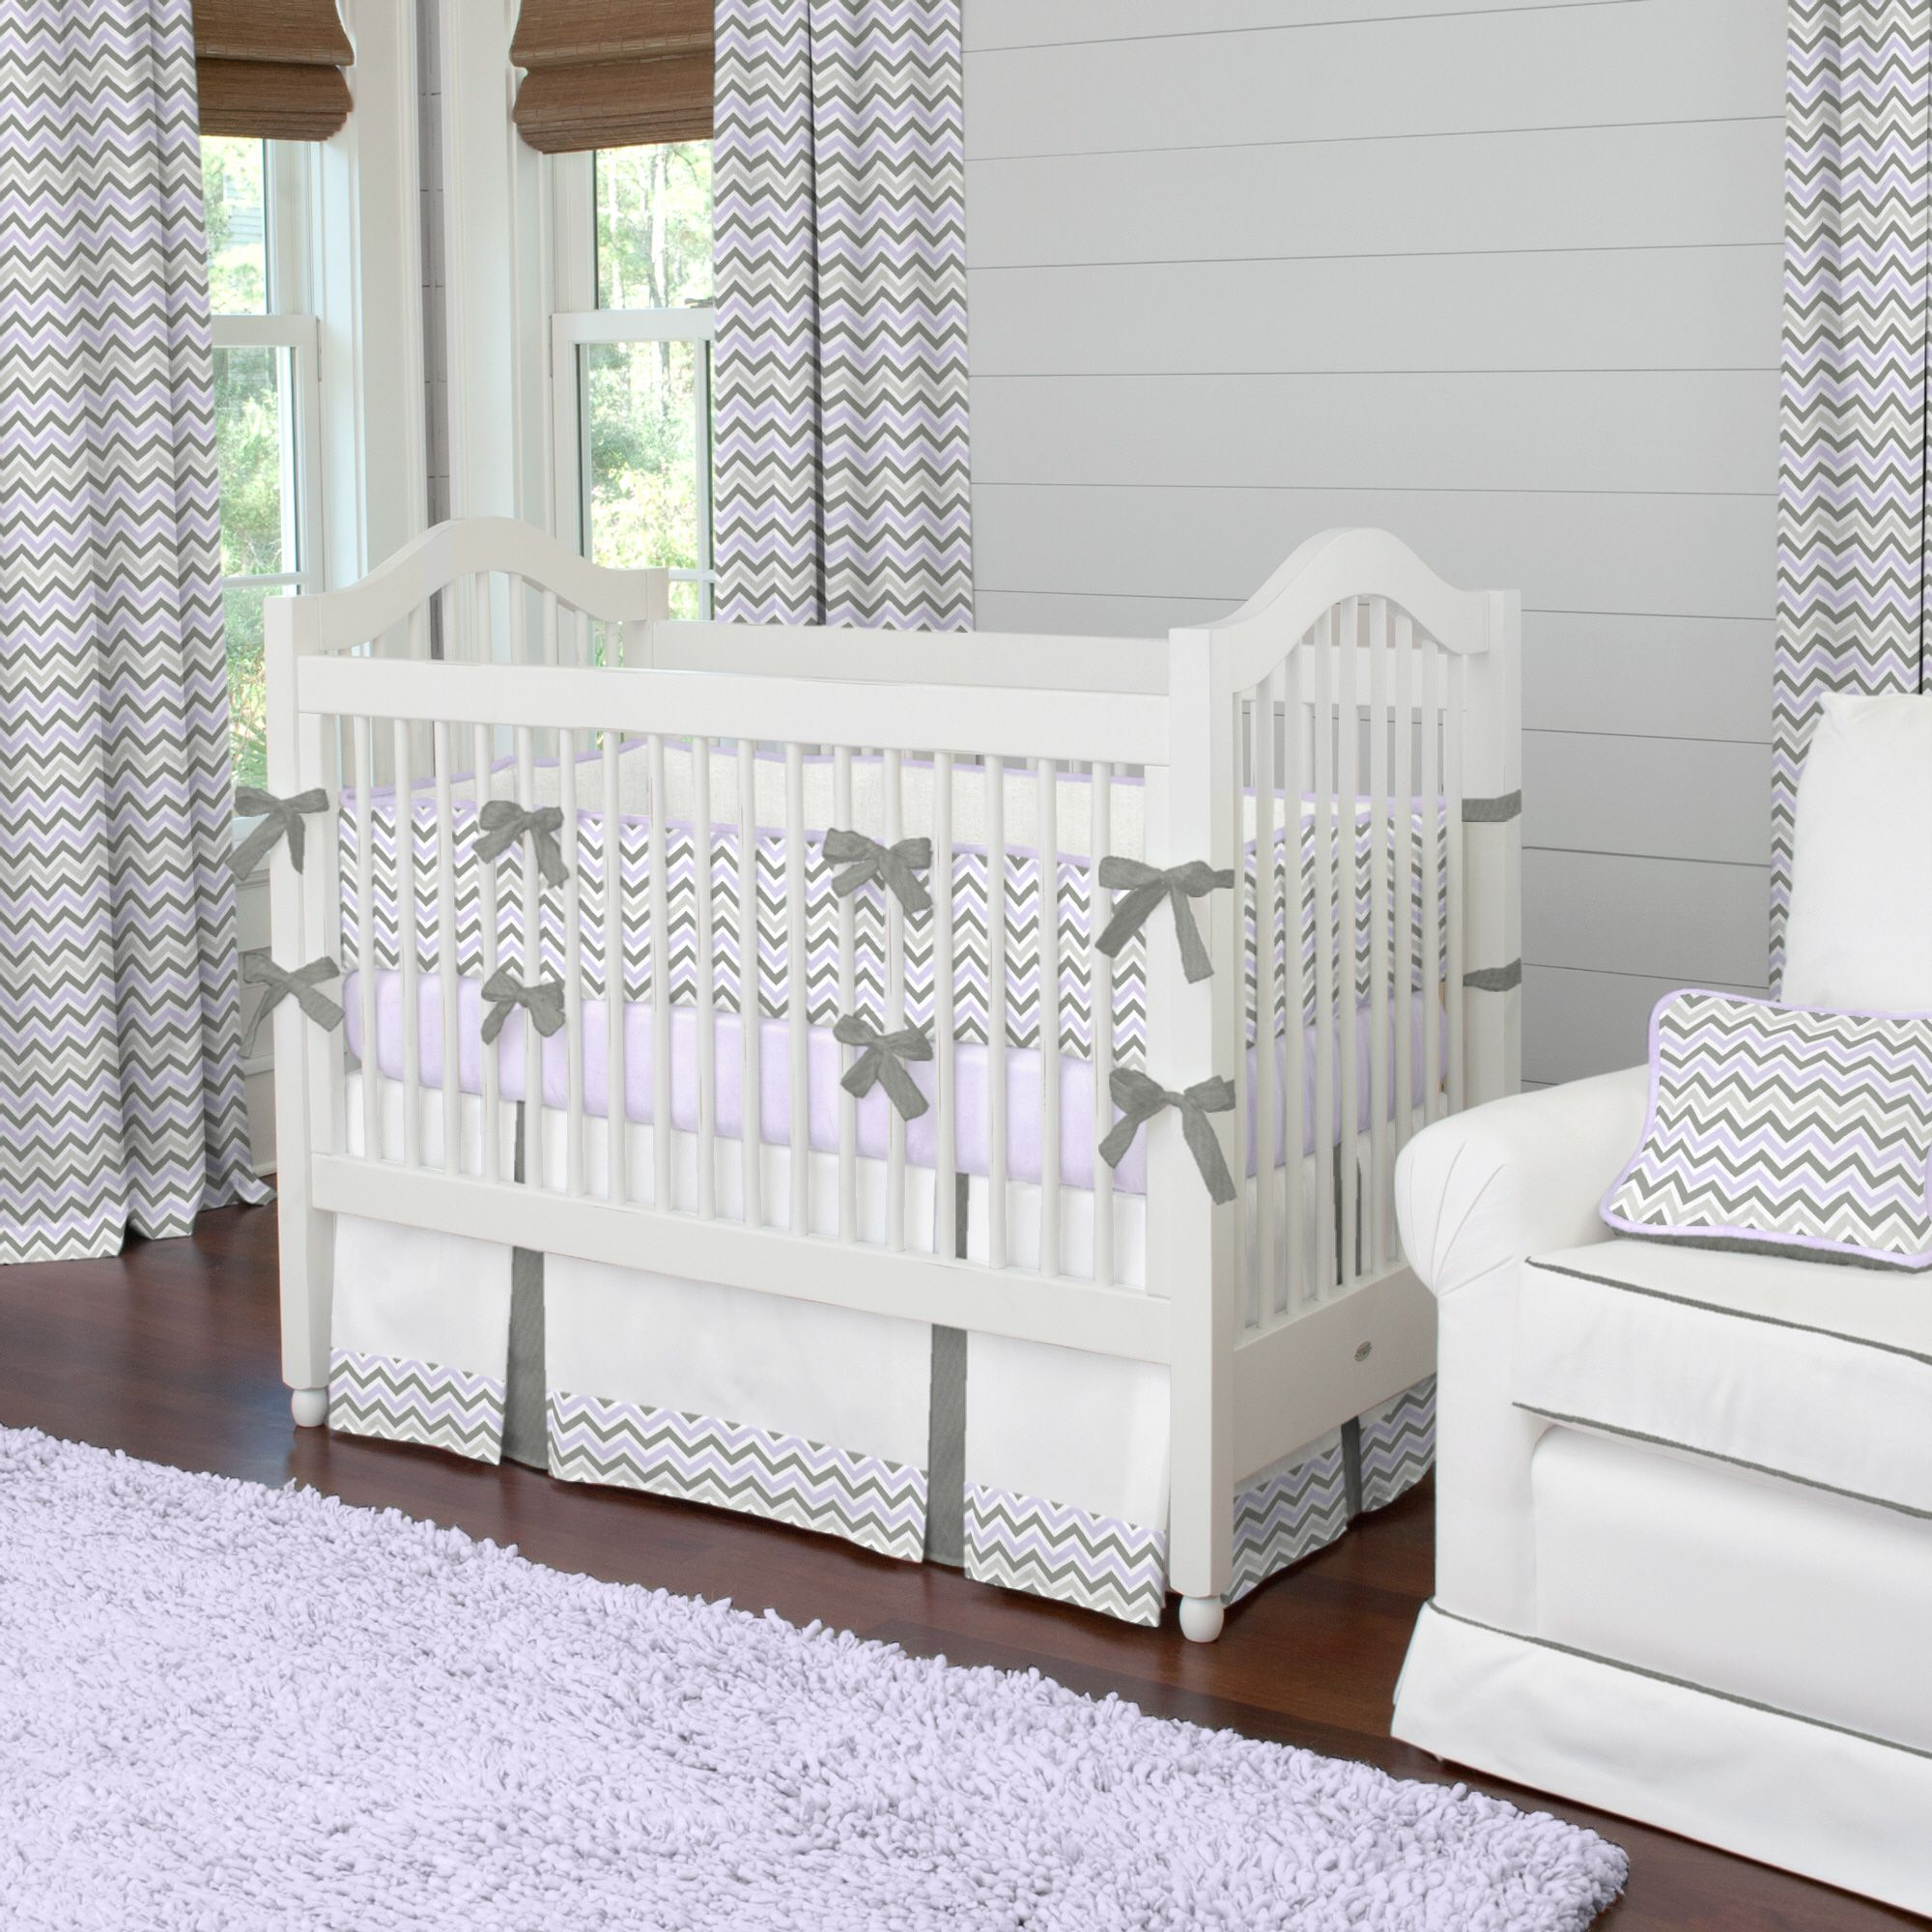 Lilac And Slate Gray Chevron Crib Bedding Baby For Carouseldesigns